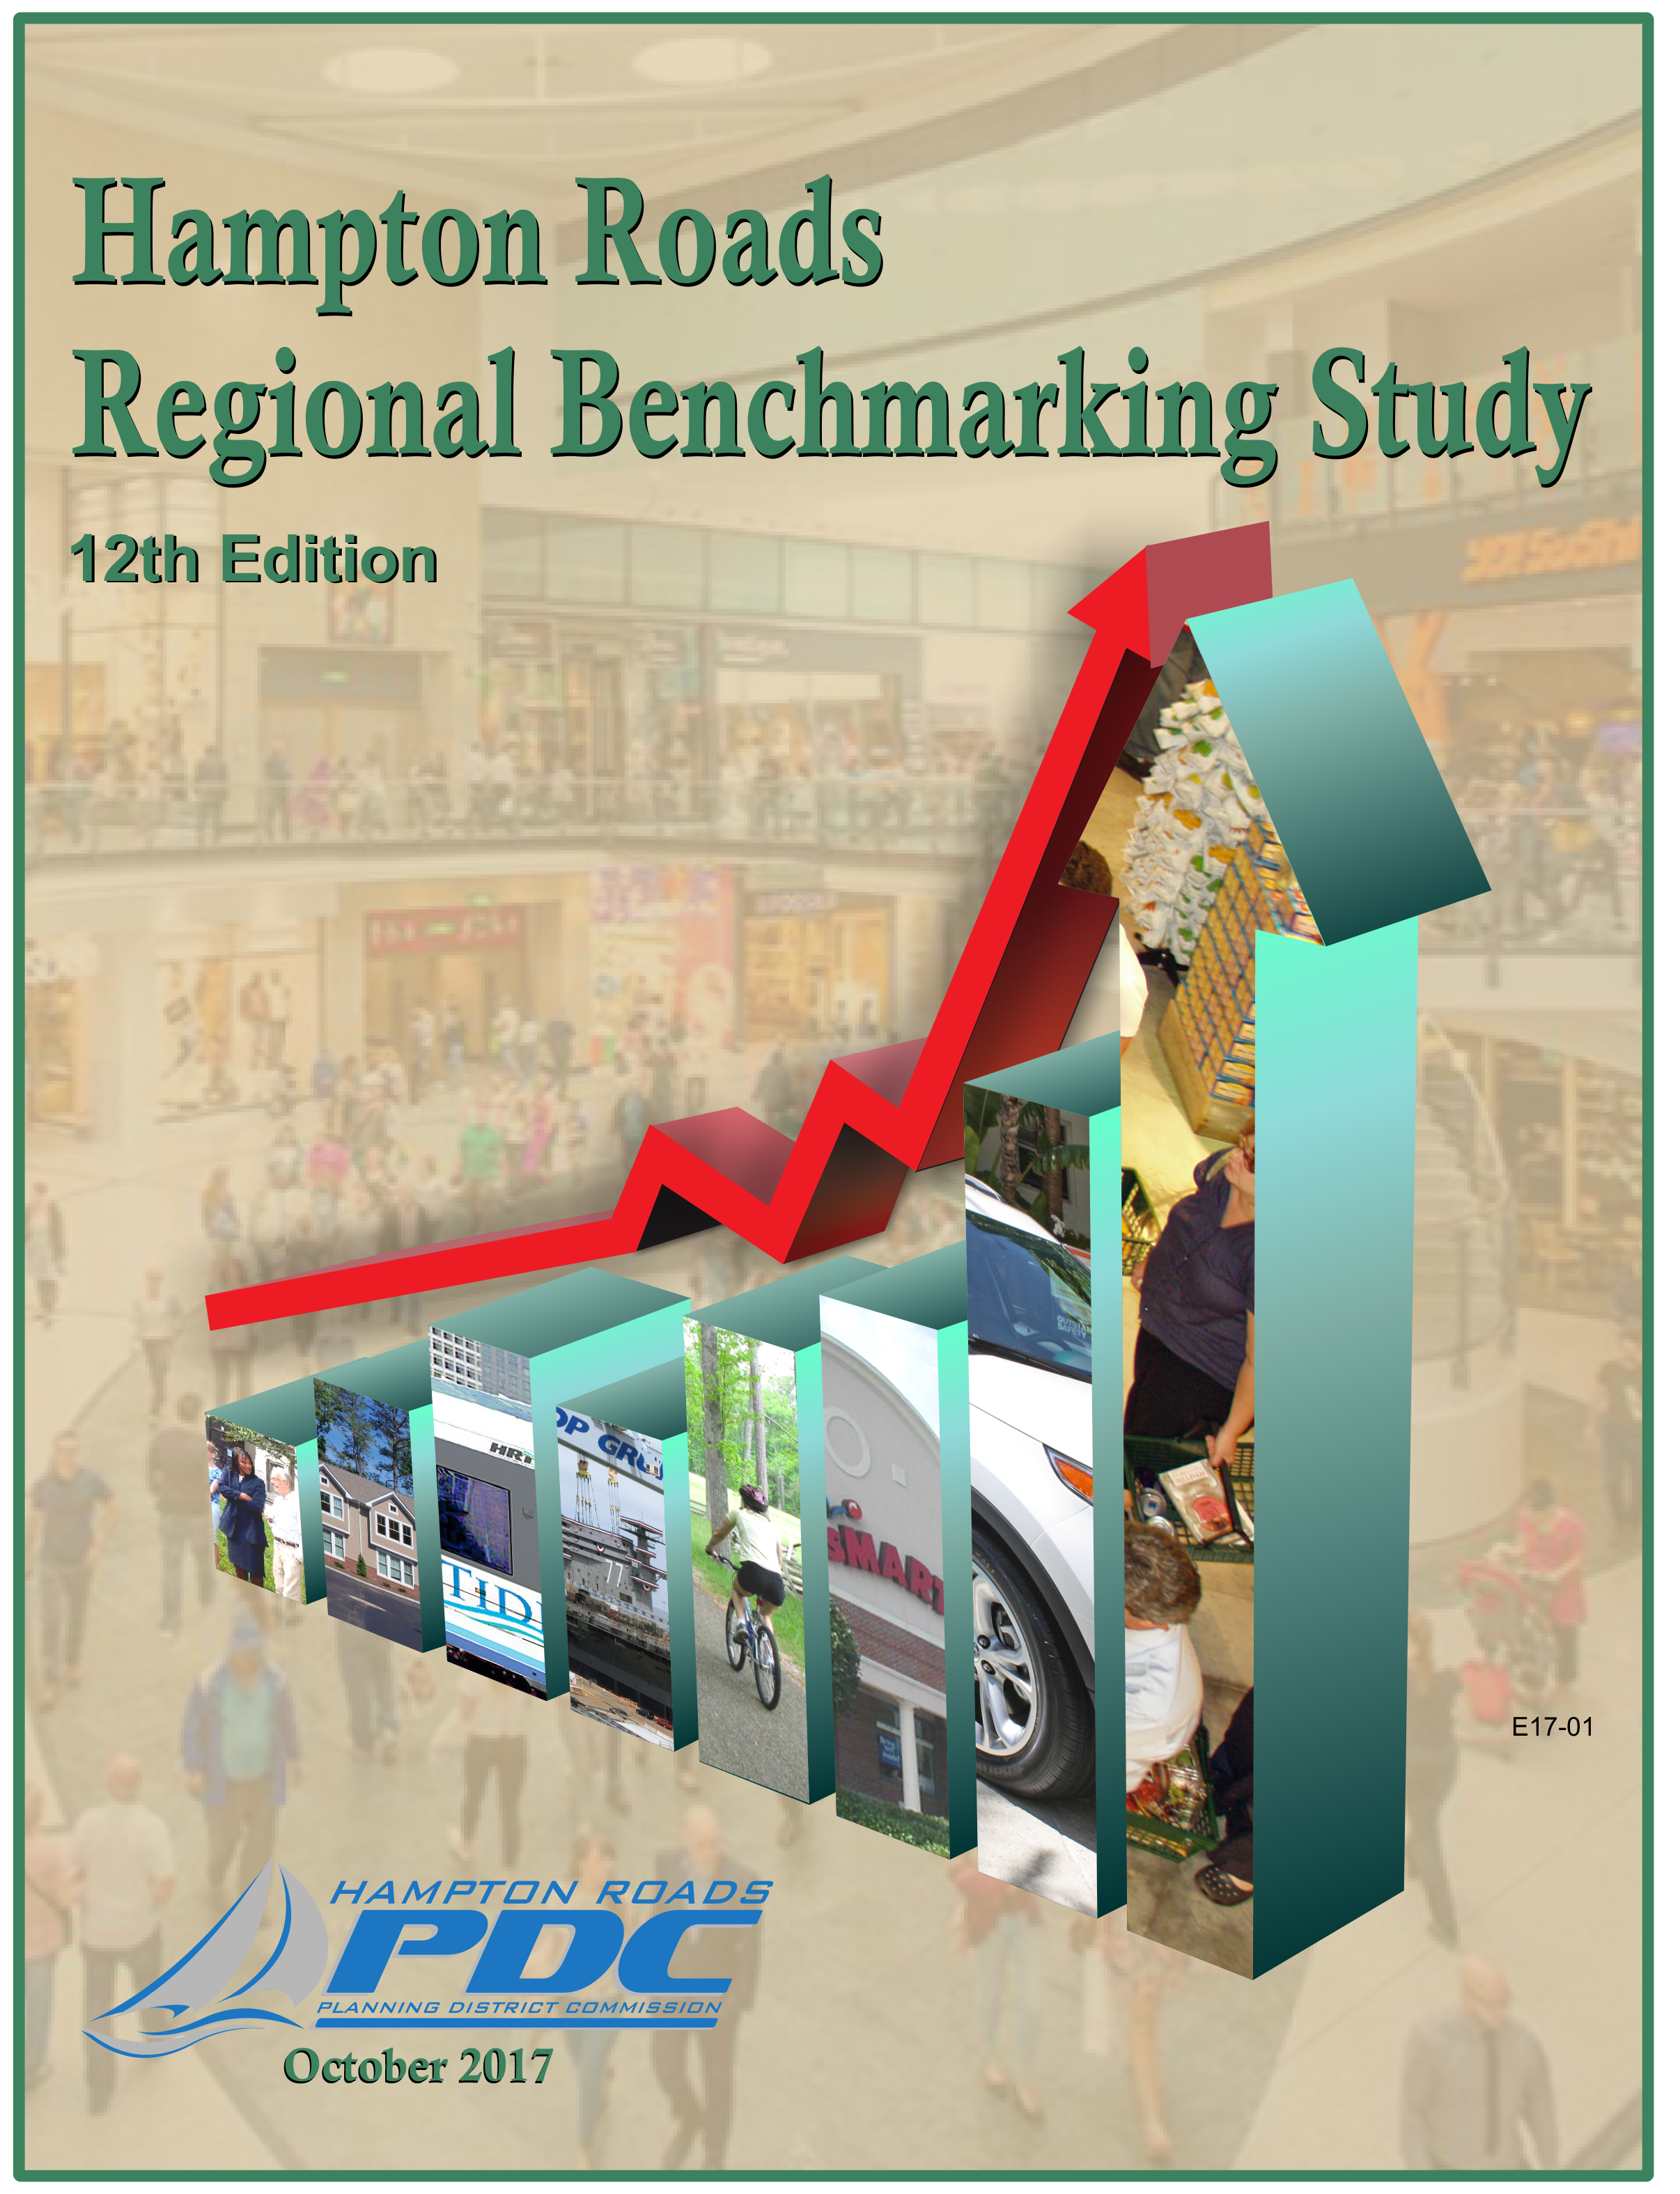 Cover of the 12th Edition of the Annual Hampton Roads Regional Benchmarking Study